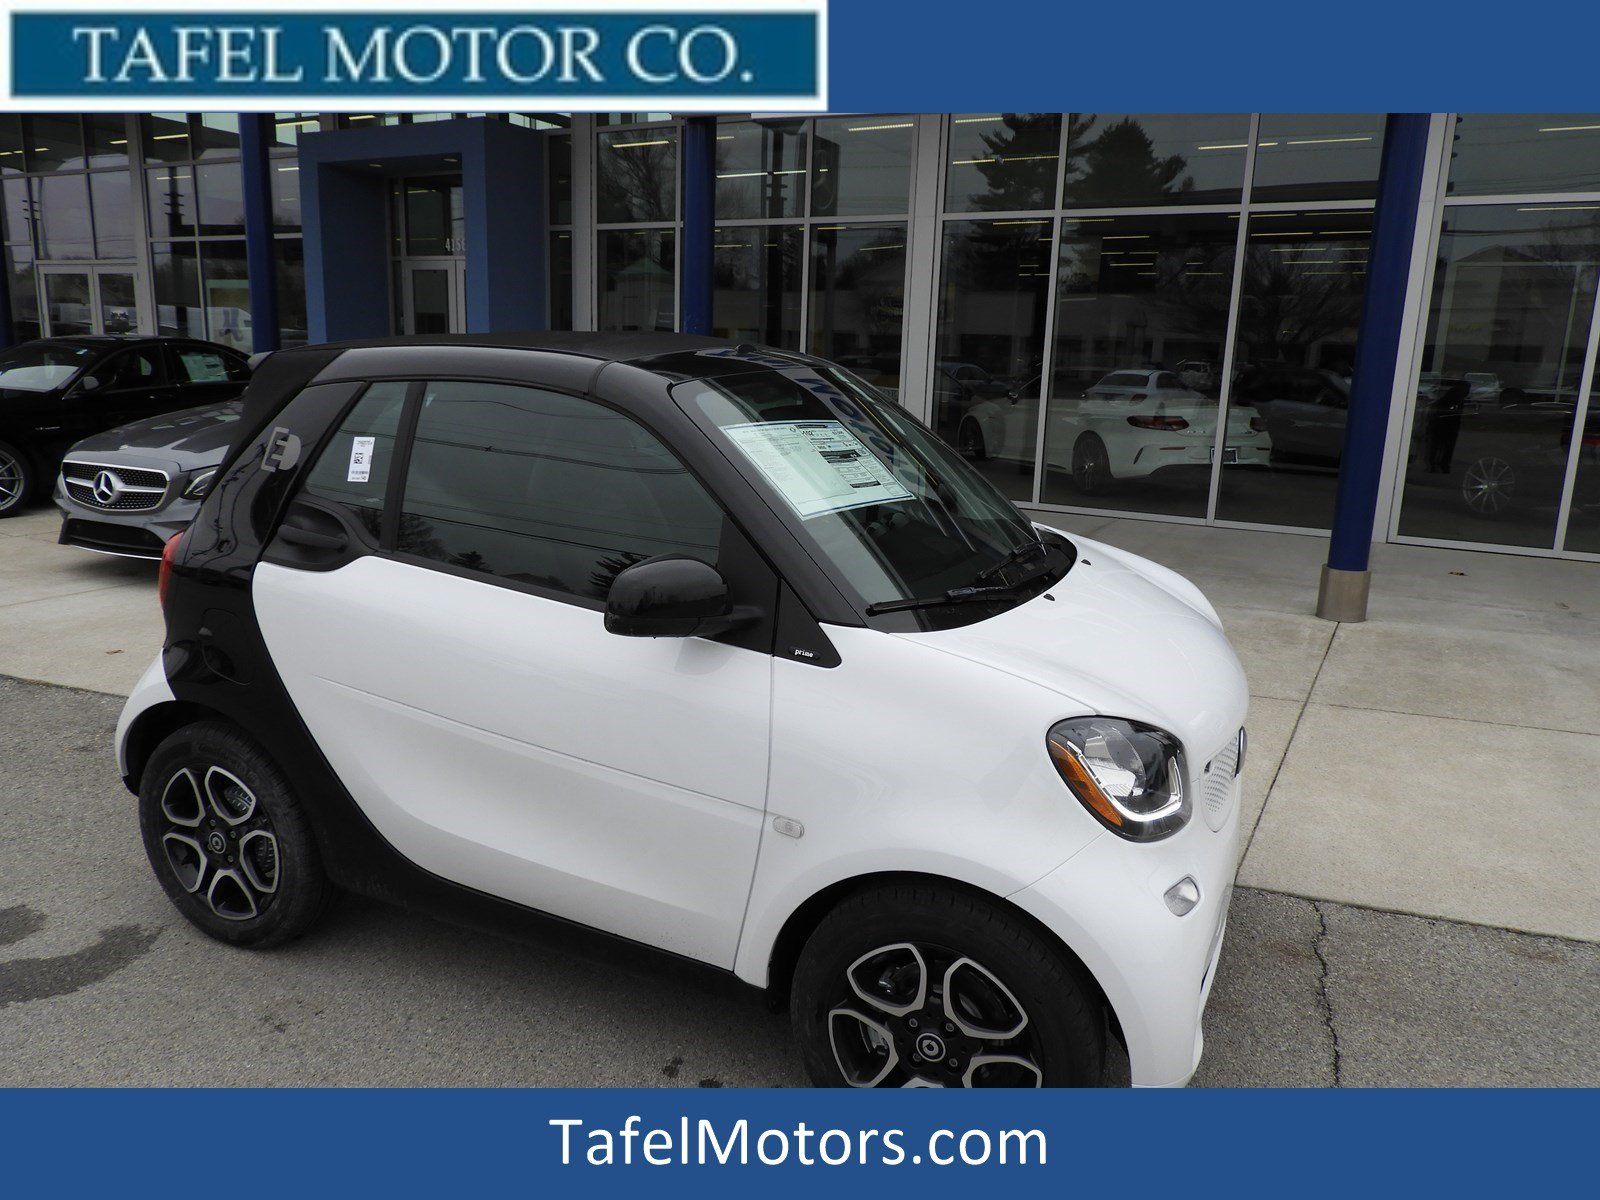 New 2018 smart fortwo Electric Drive Convertible